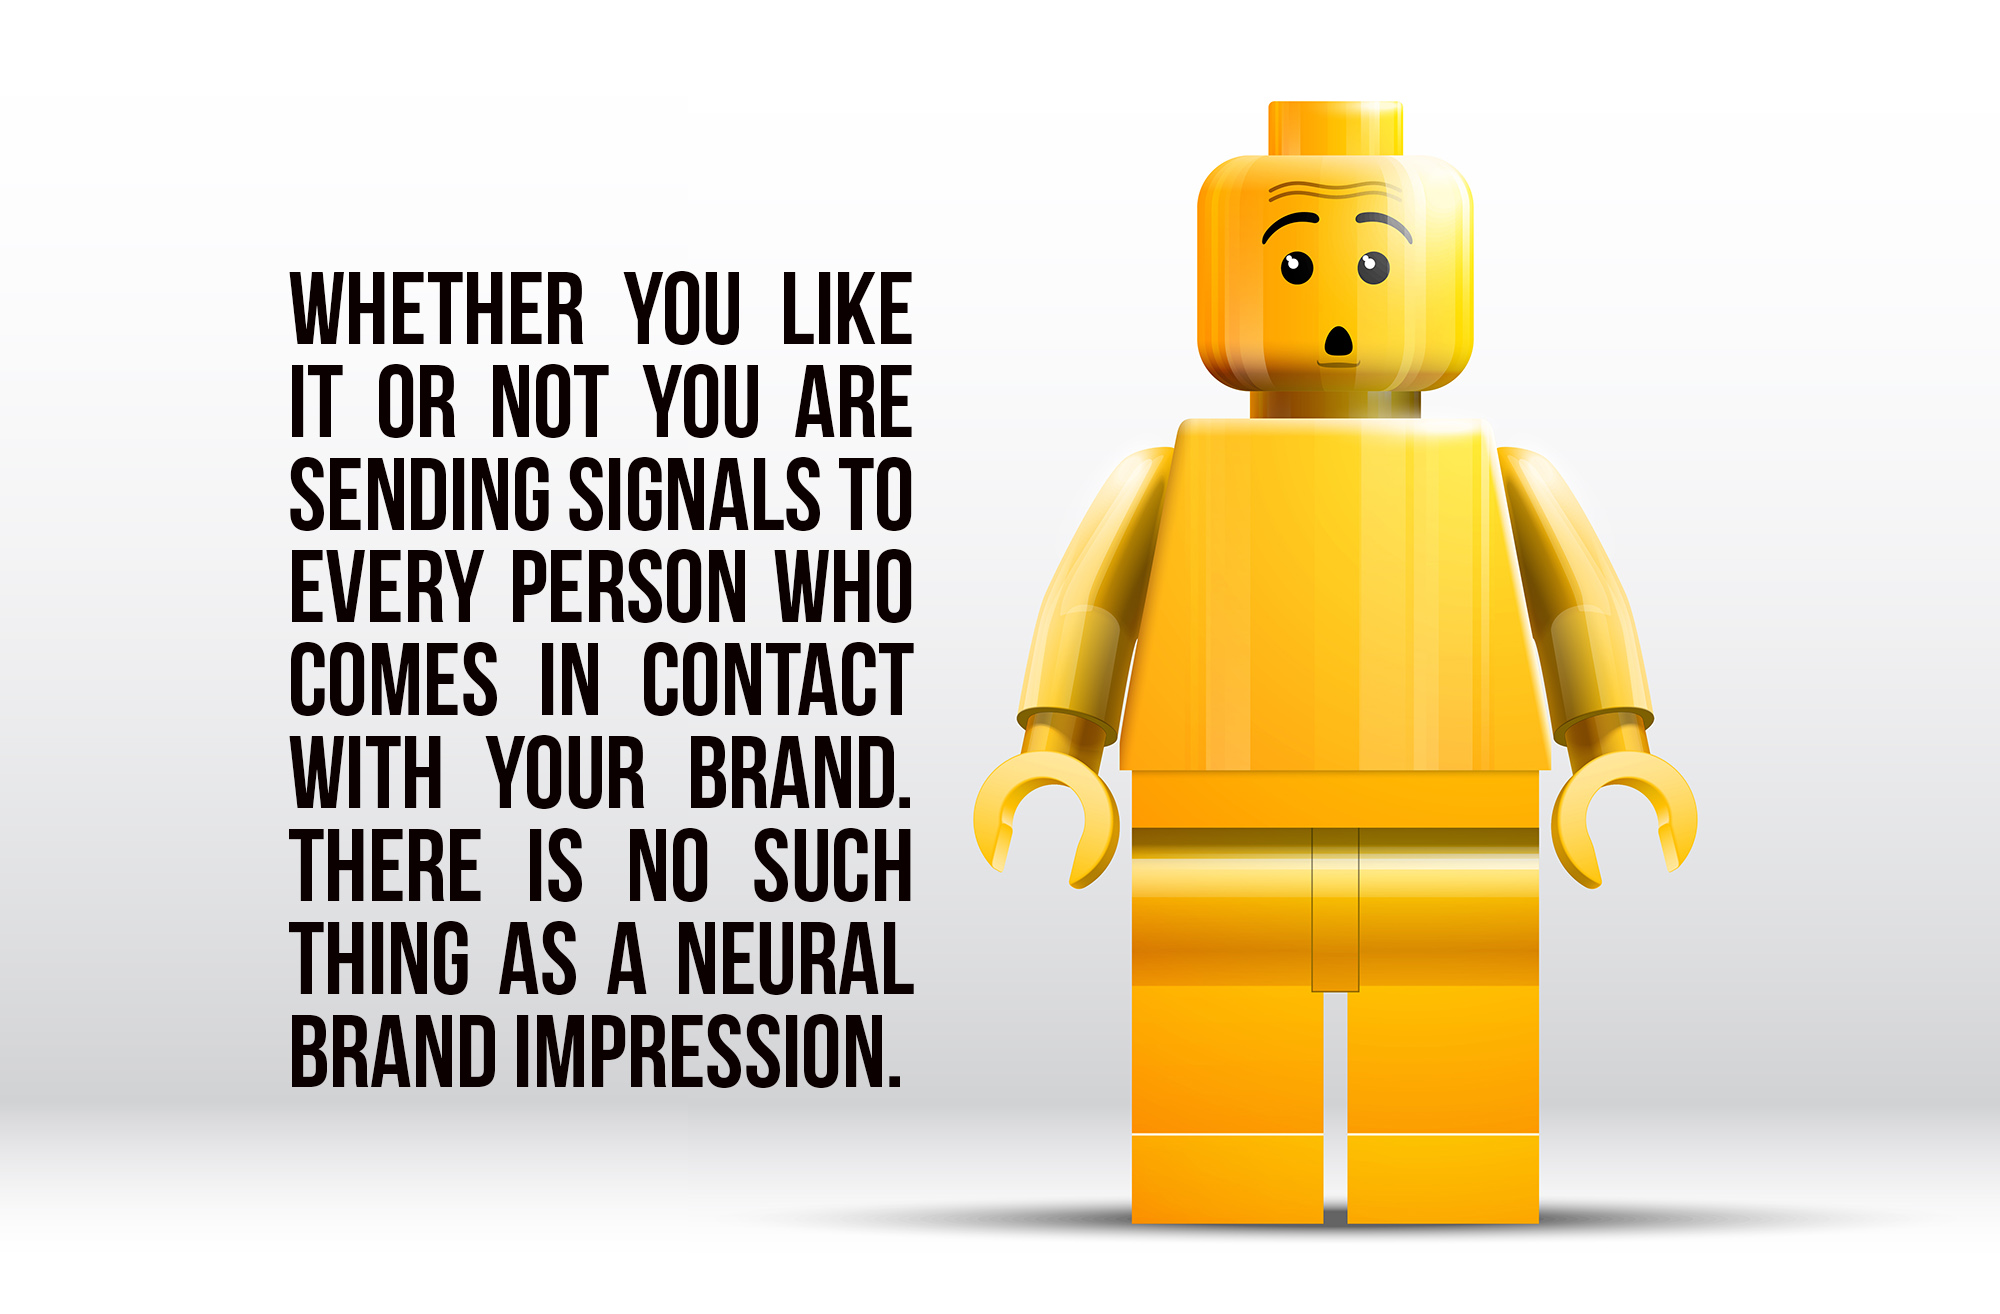 you are sending signals to everyone who comes in contact with your brand-no such thing as a neutral brand impression